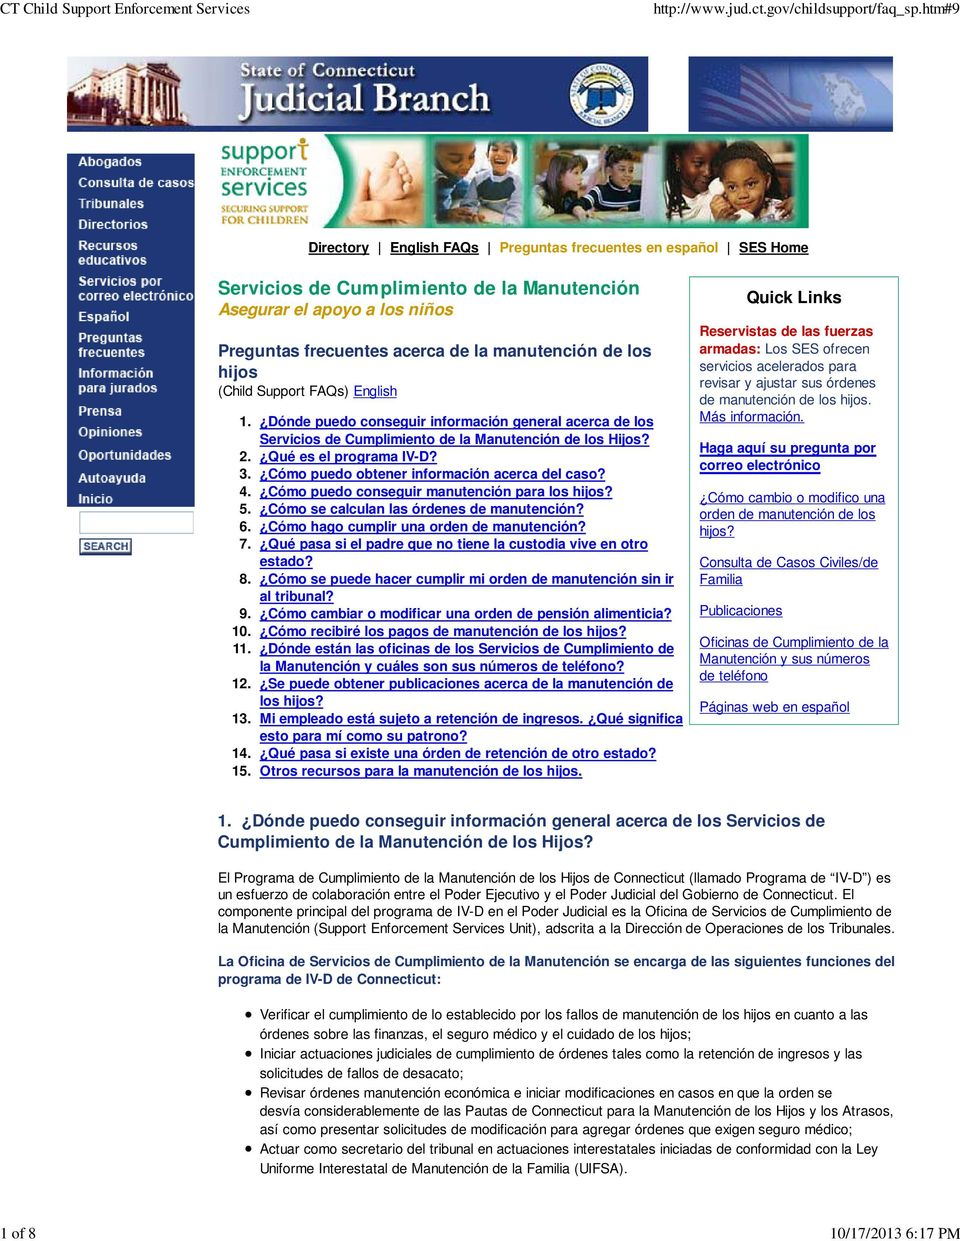 manutención de los hijos (Child Support FAQs) English Quick Links Reservistas de las fuerzas armadas: Los SES ofrecen servicios acelerados para revisar y ajustar sus órdenes de manutención de los